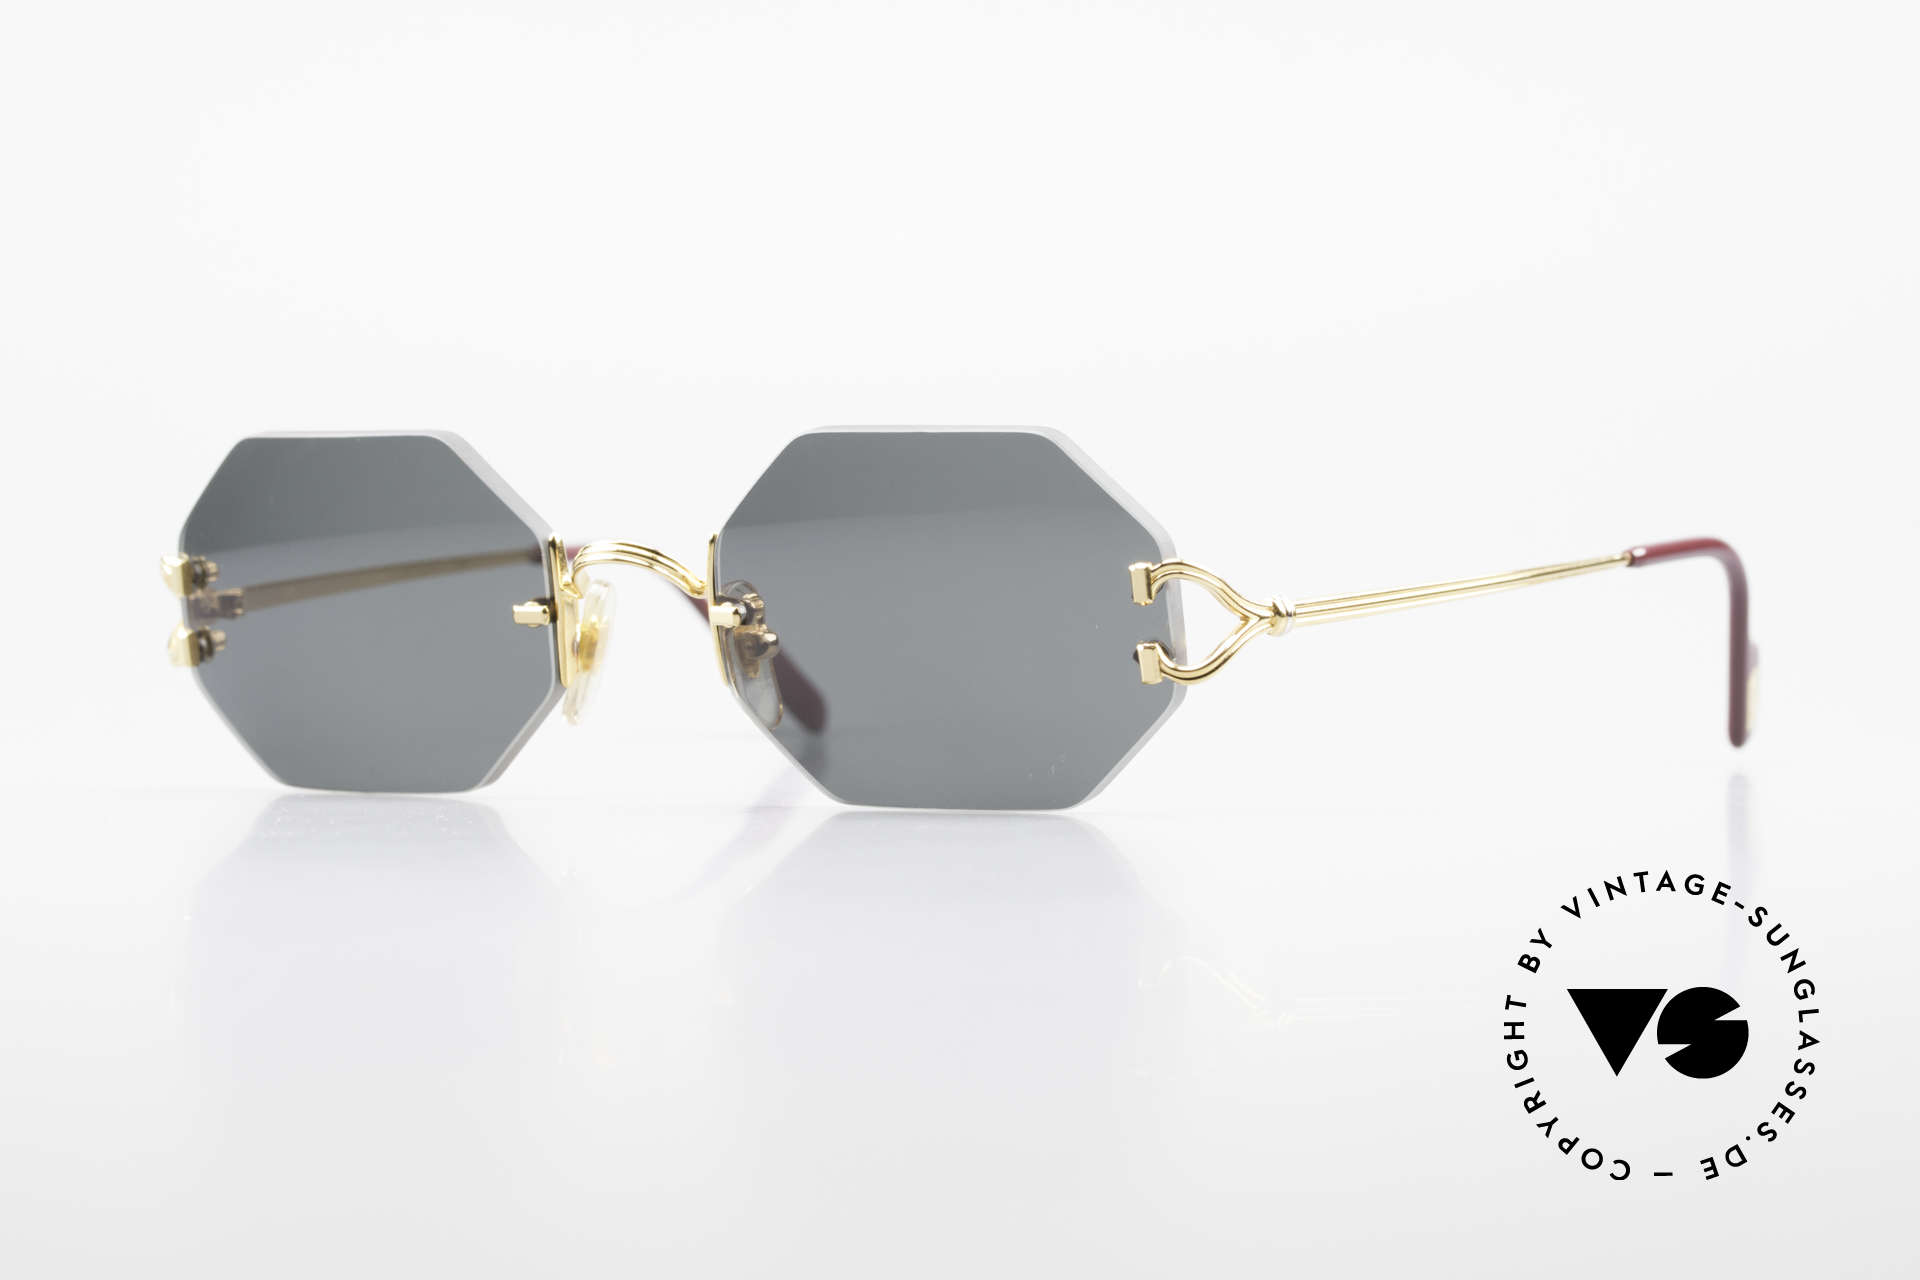 Cartier Rimless Octag Rimless Octagonal Shades - L, octagonal rimless CARTIER luxury shades; unicum!, Made for Men and Women